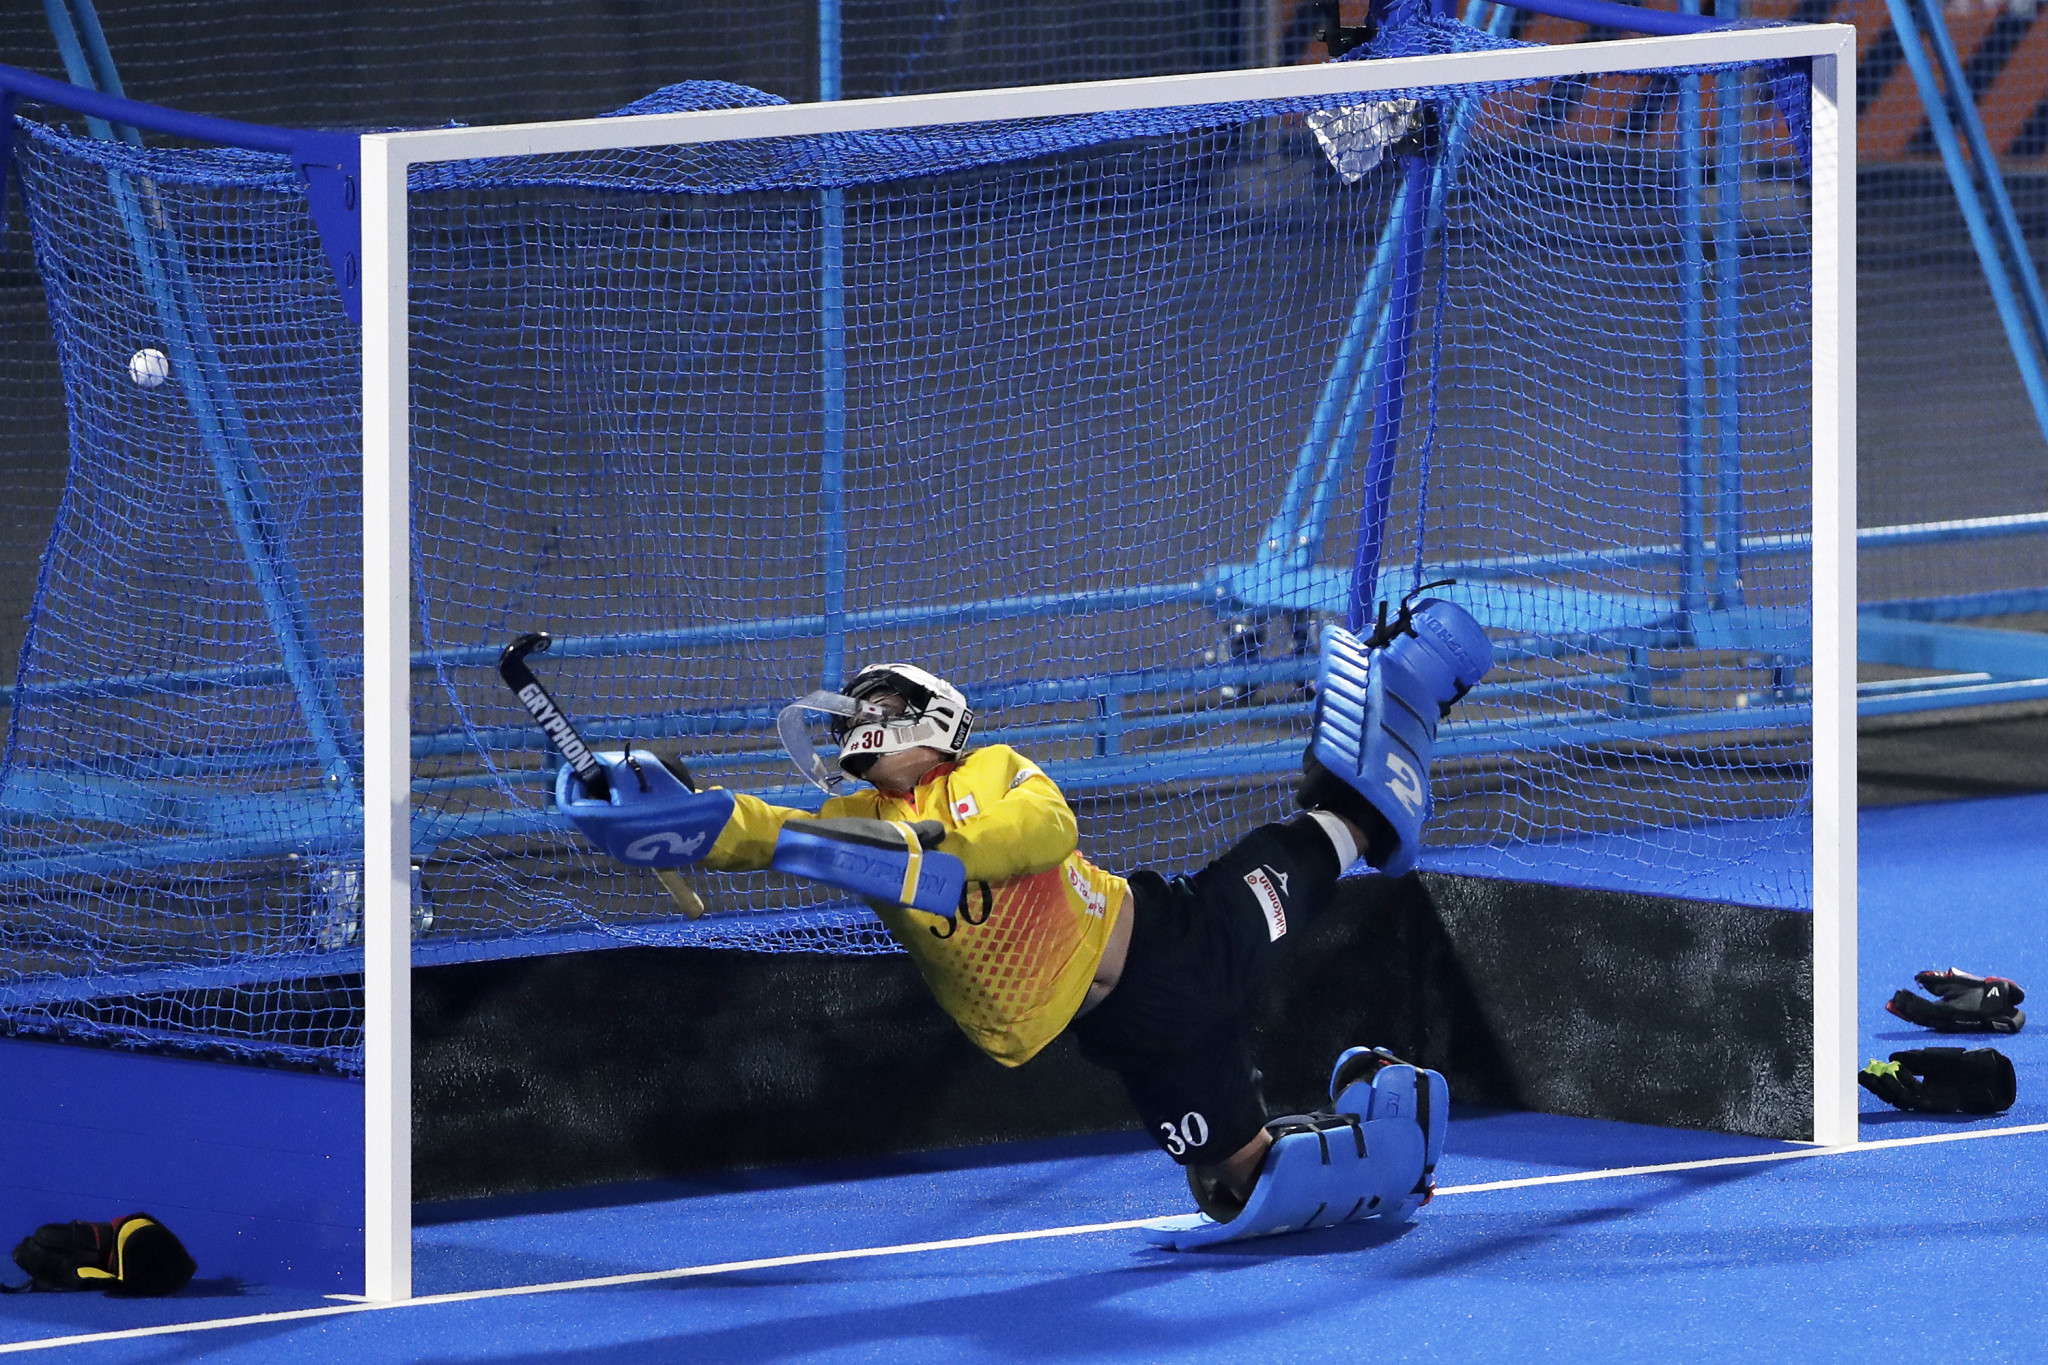 The event is testing facilities at the Oi Hockey Stadium ©Getty Images